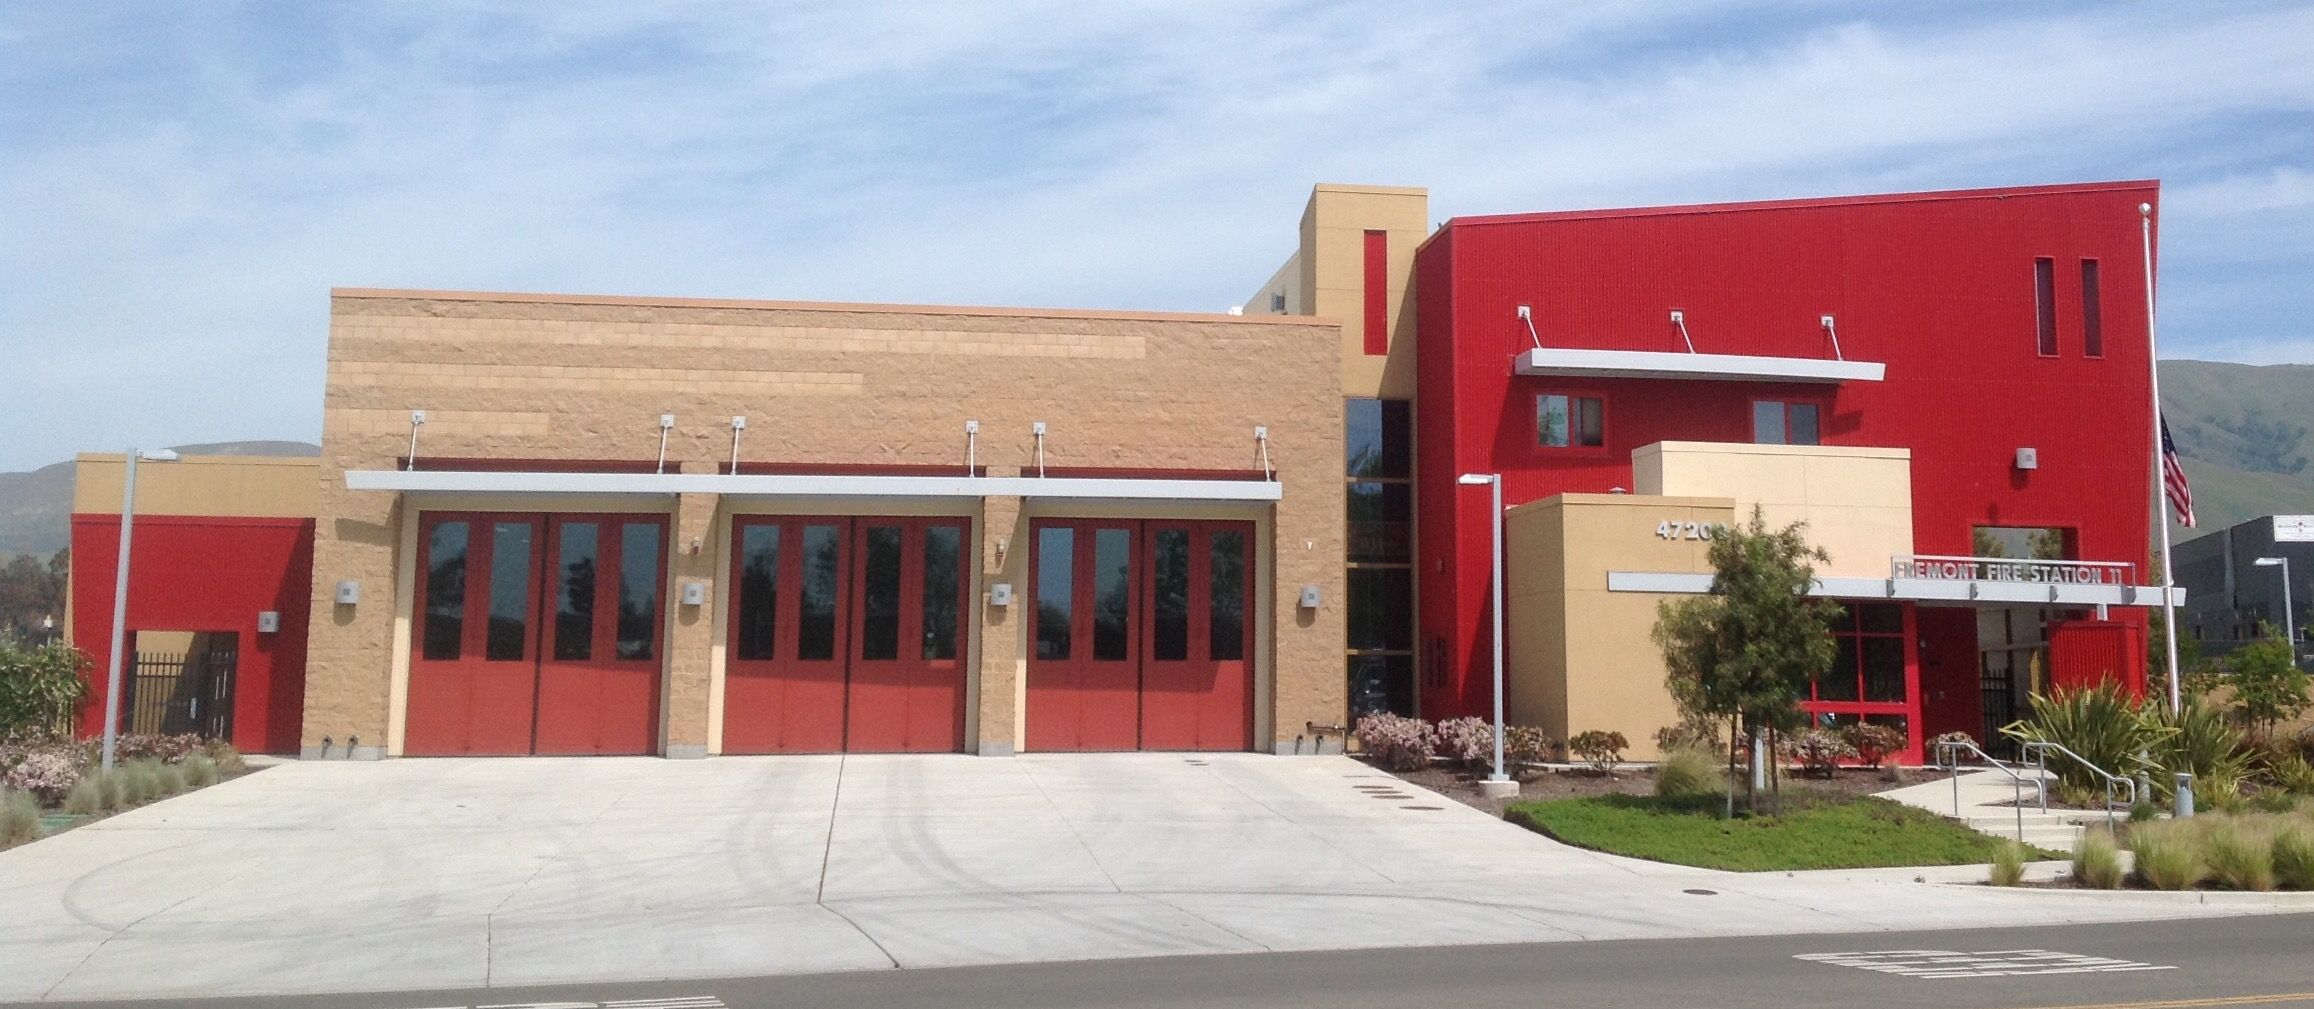 Fremont City Station 11. Fremont, CA. This is a new station that has not been occupied as of April 1, 2015.